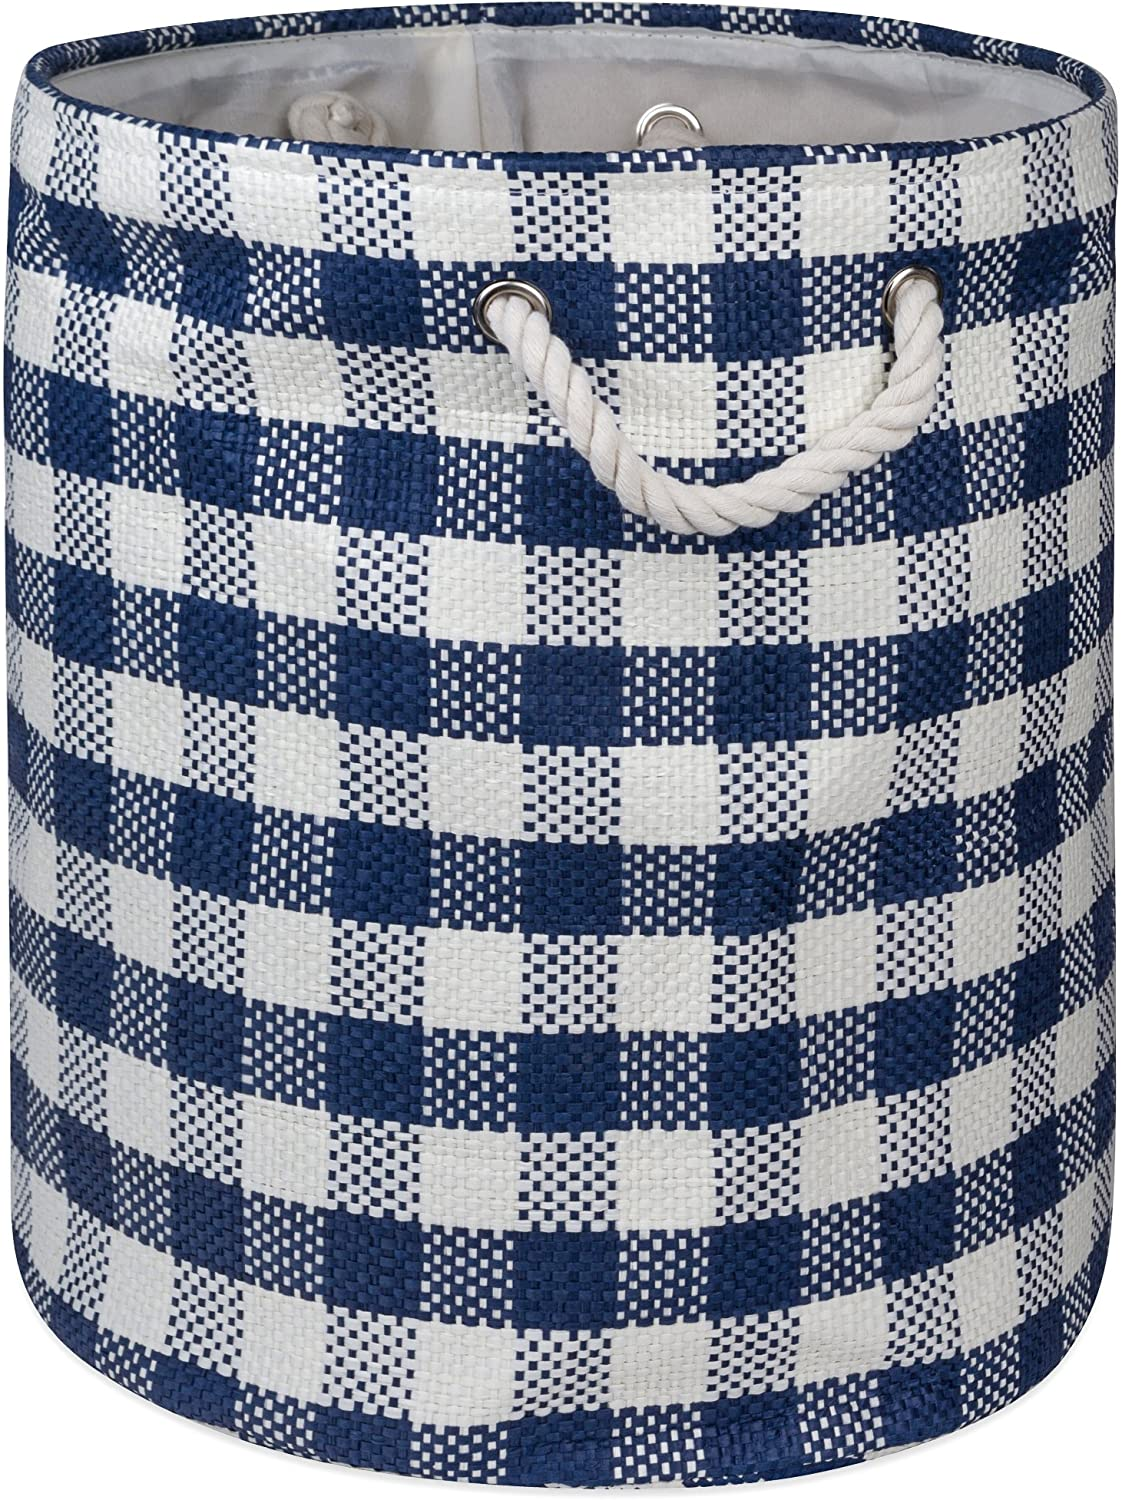 DII Checkers Woven Paper Collapsible Laundry Hamper and Storage Bin, 20x15x15, Large Round, Navy